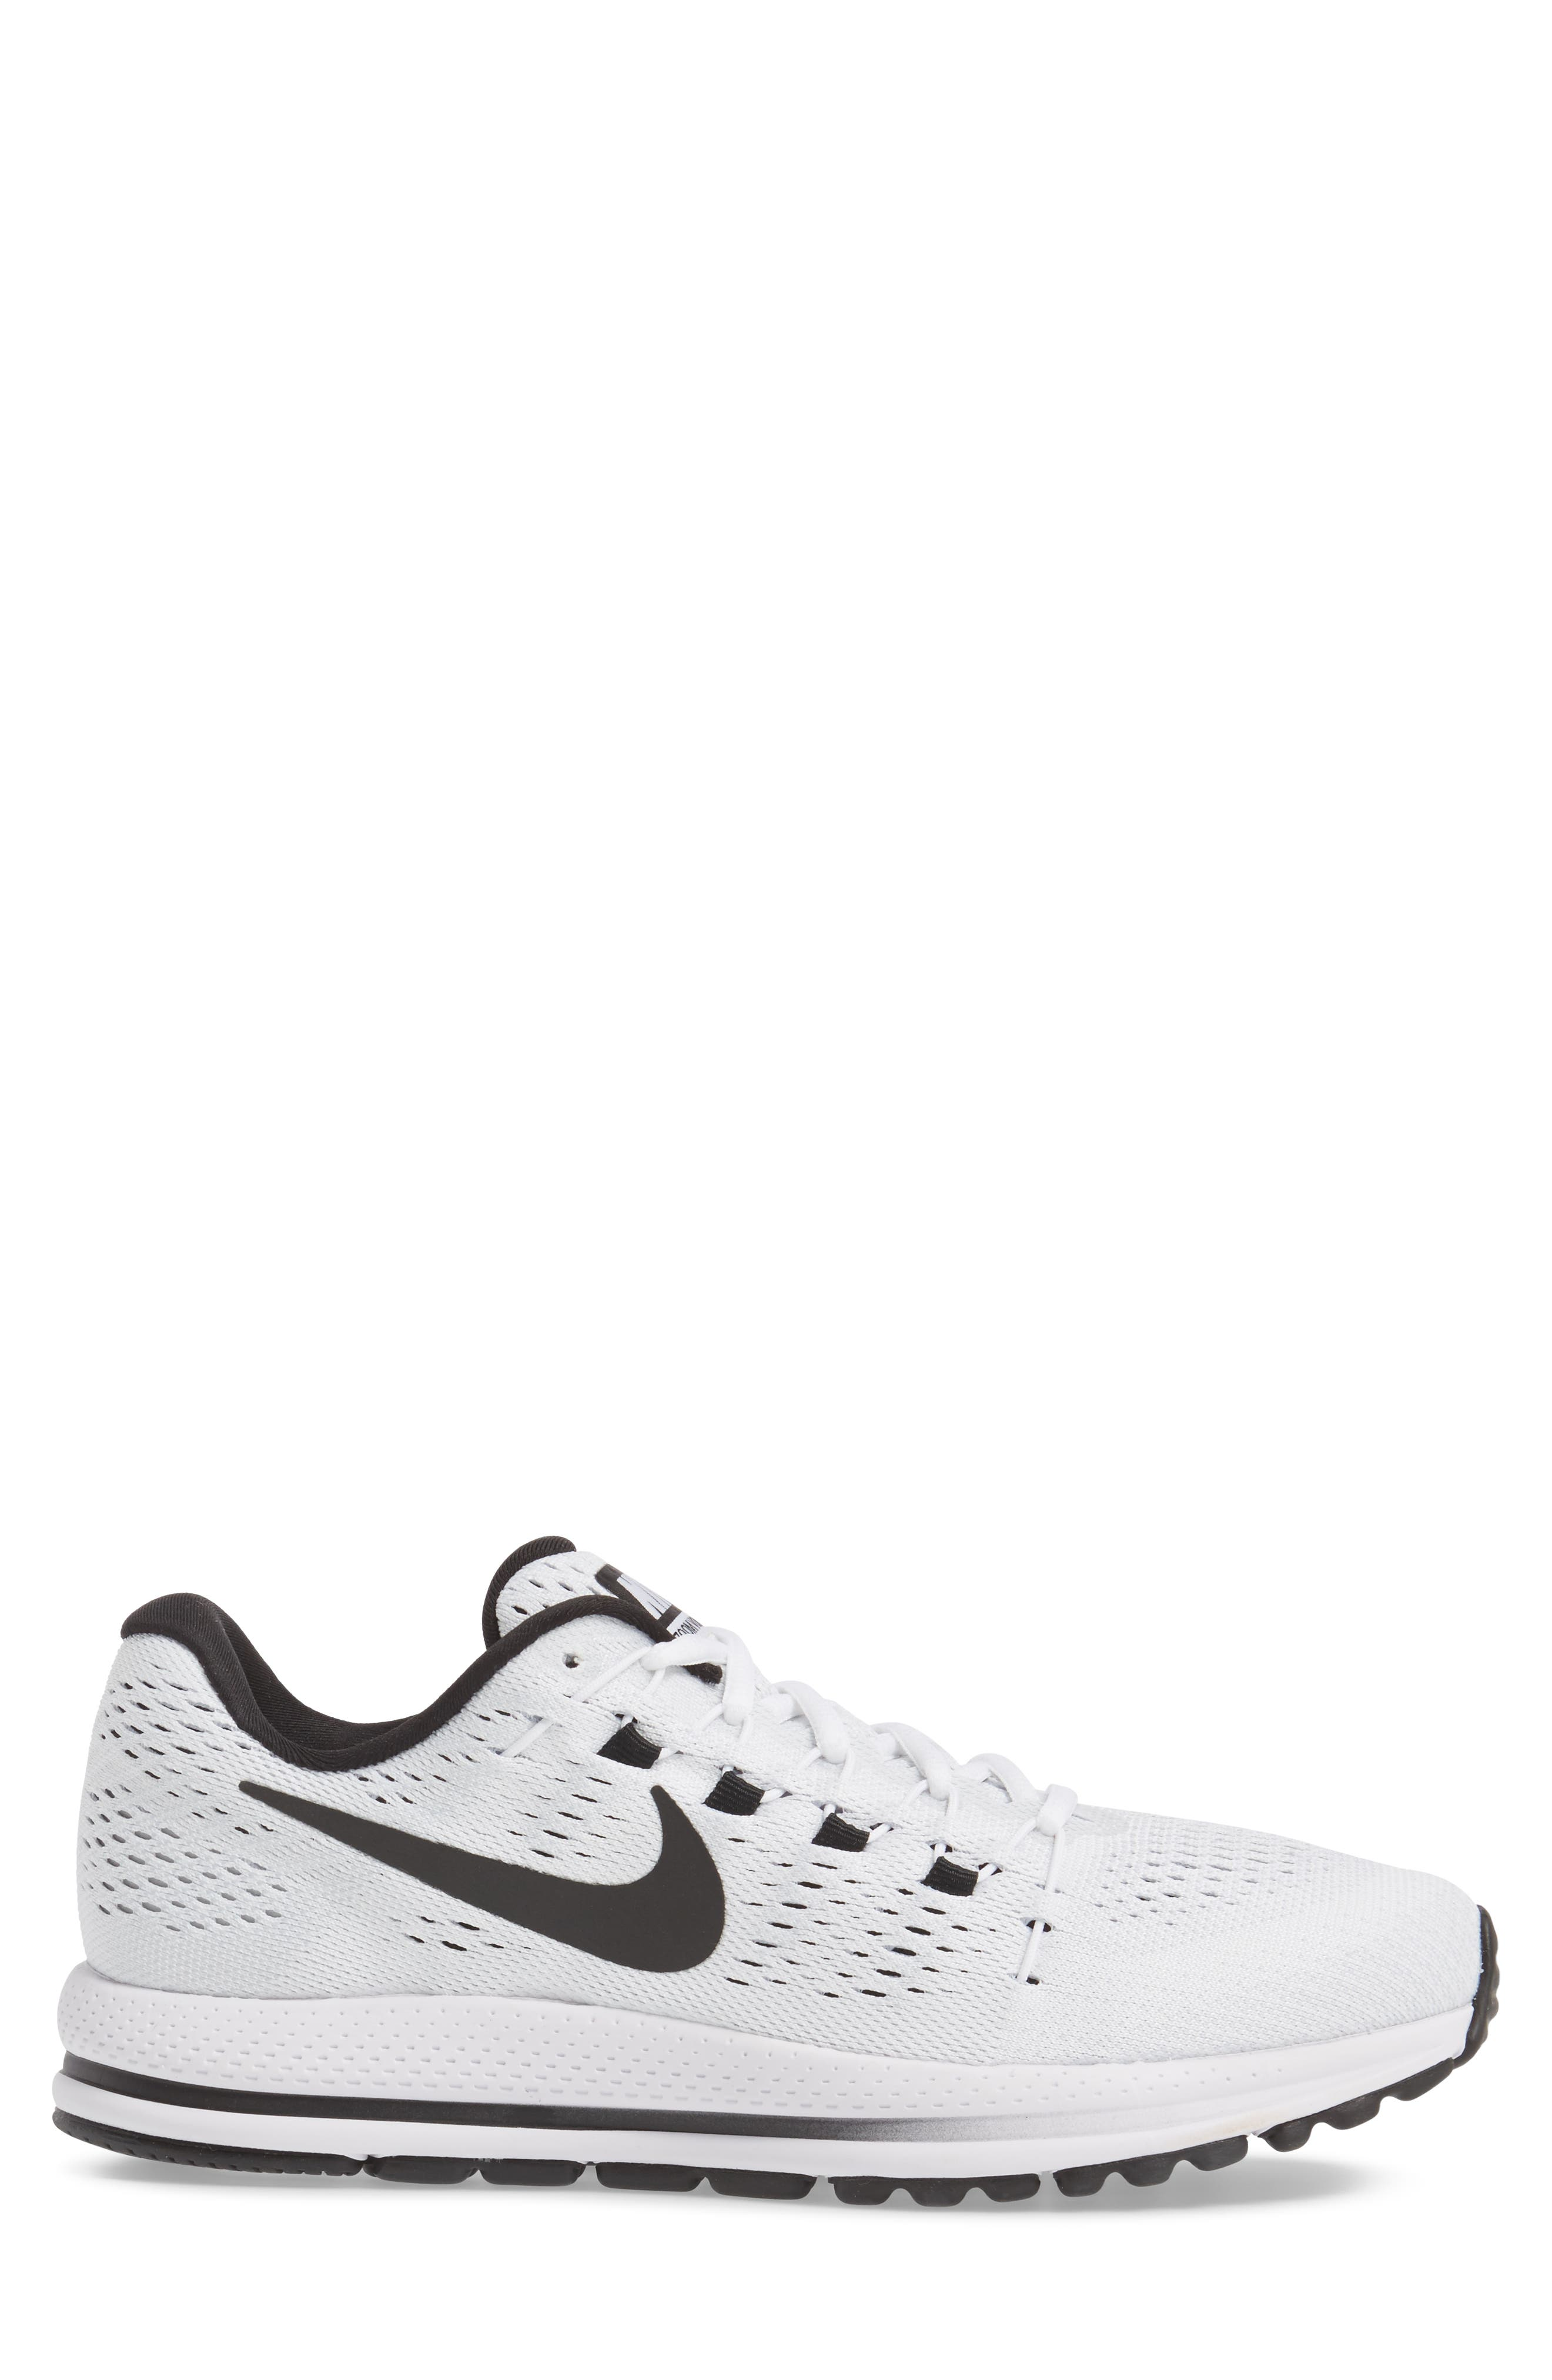 NIKE,                             Air Zoom Vomero 12 Running Shoe,                             Alternate thumbnail 3, color,                             100